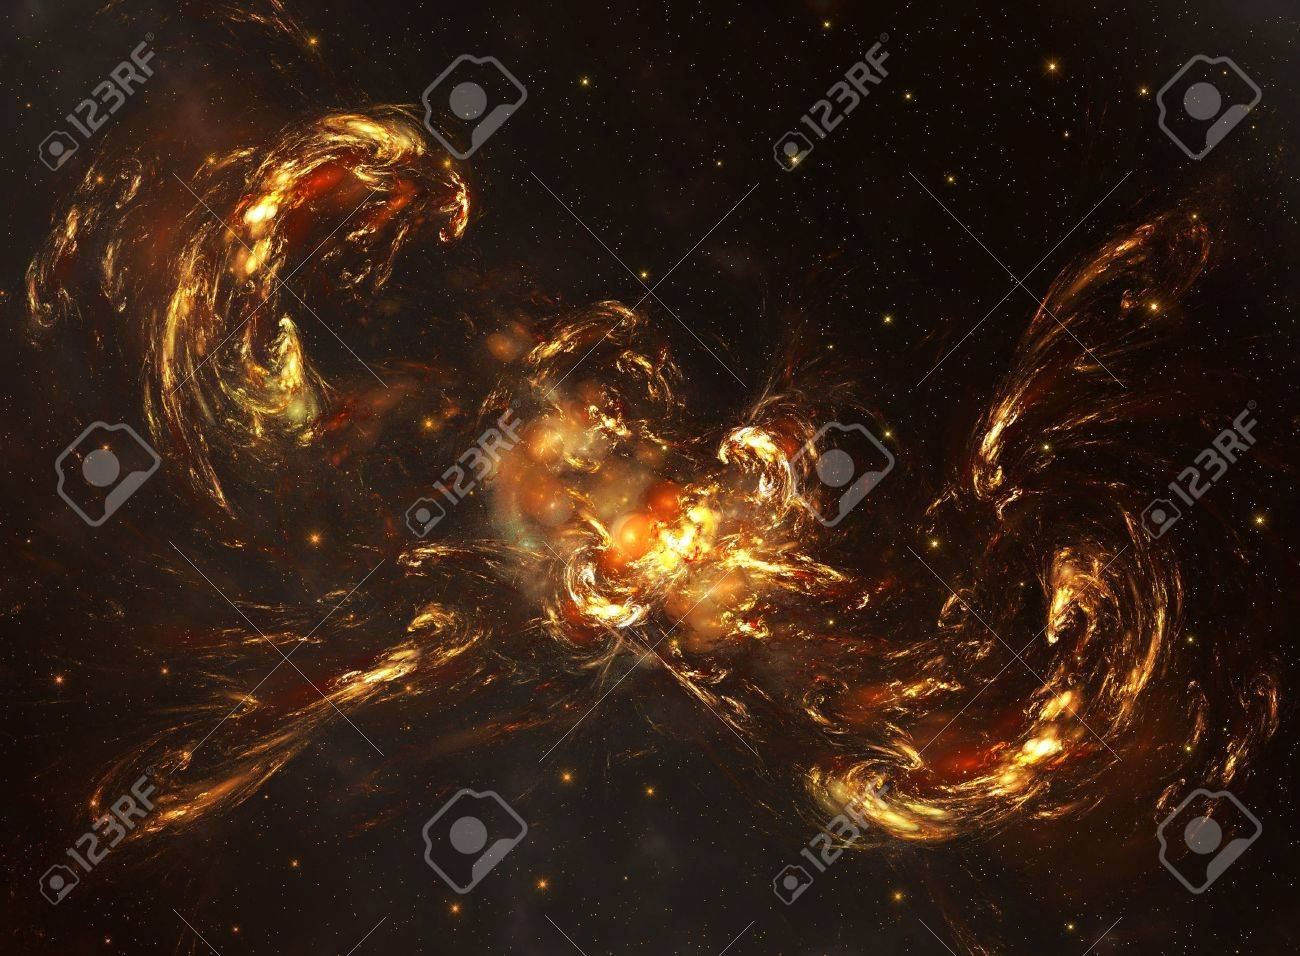 Space galaxy and star fogs Stock Photo - 11466846